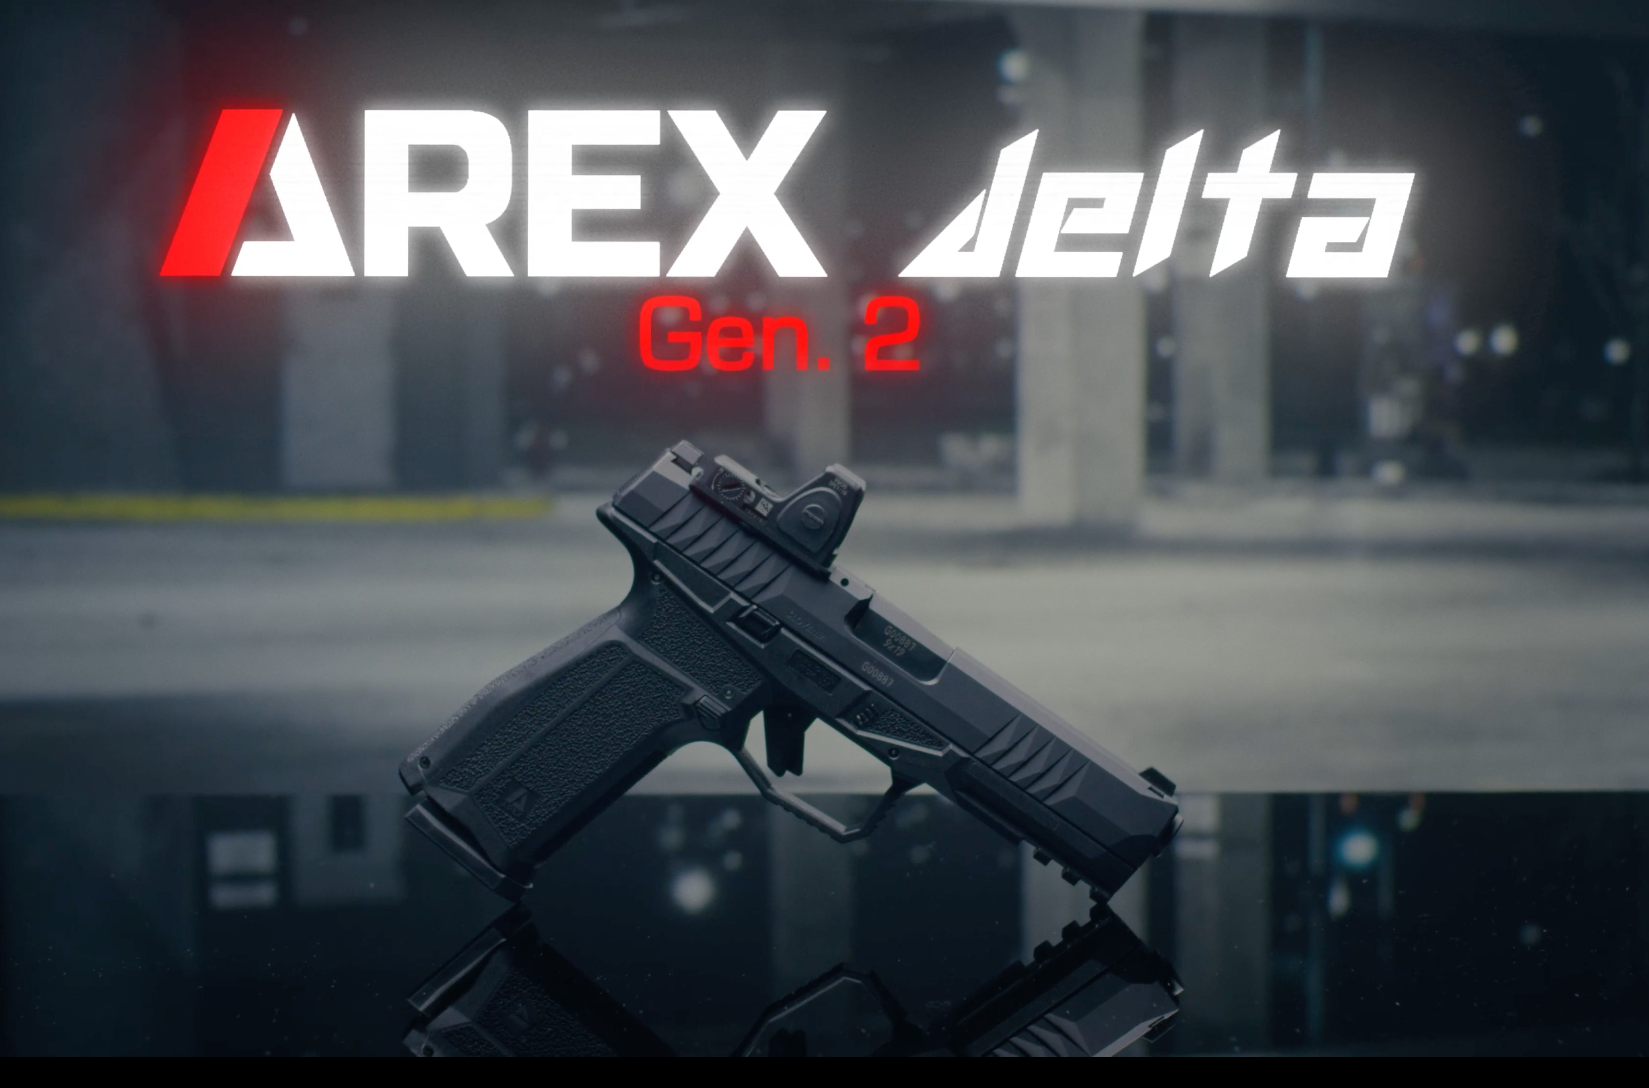 Introducing the AREX Delta Gen 2 Pistol from Slovenia